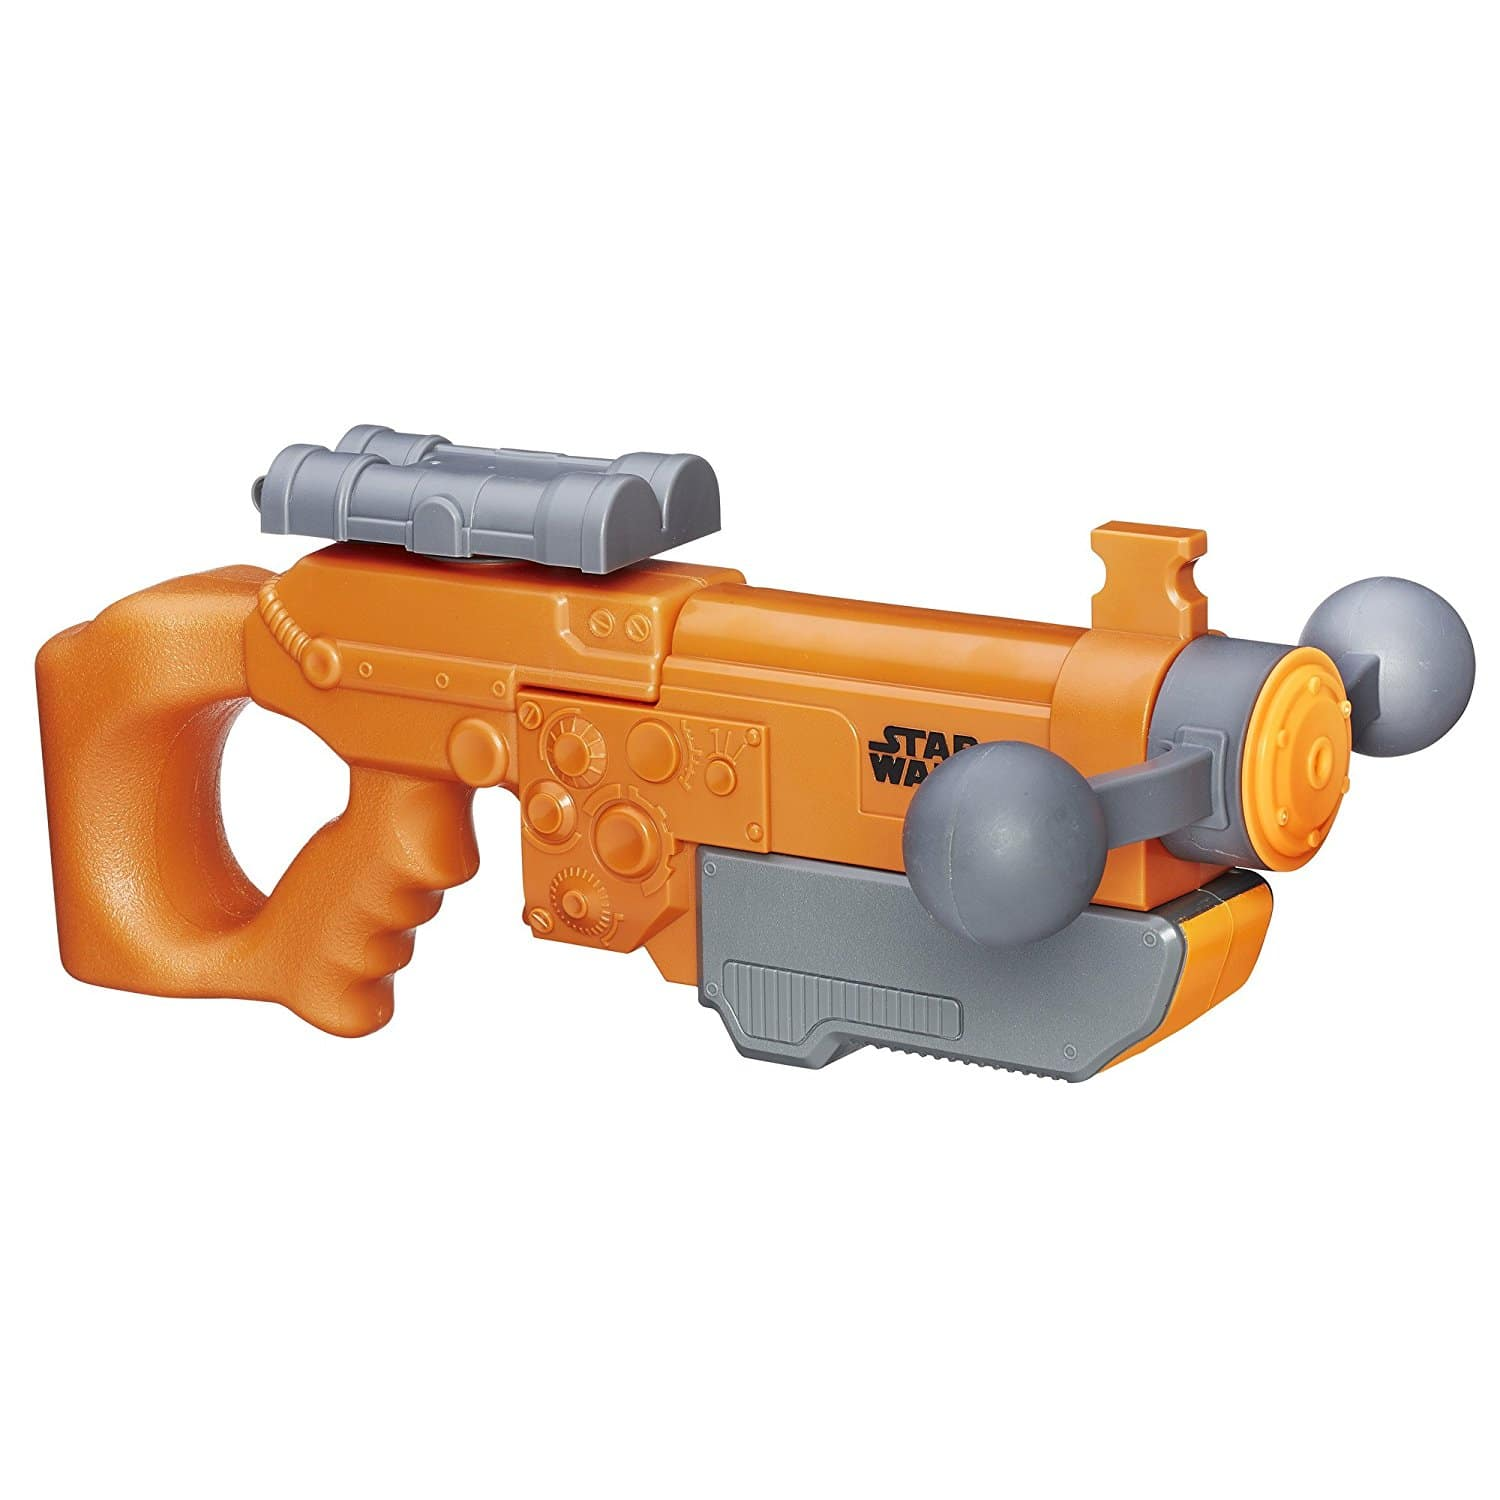 Nerf Super Soaker Star Wars Sidekick Blaster